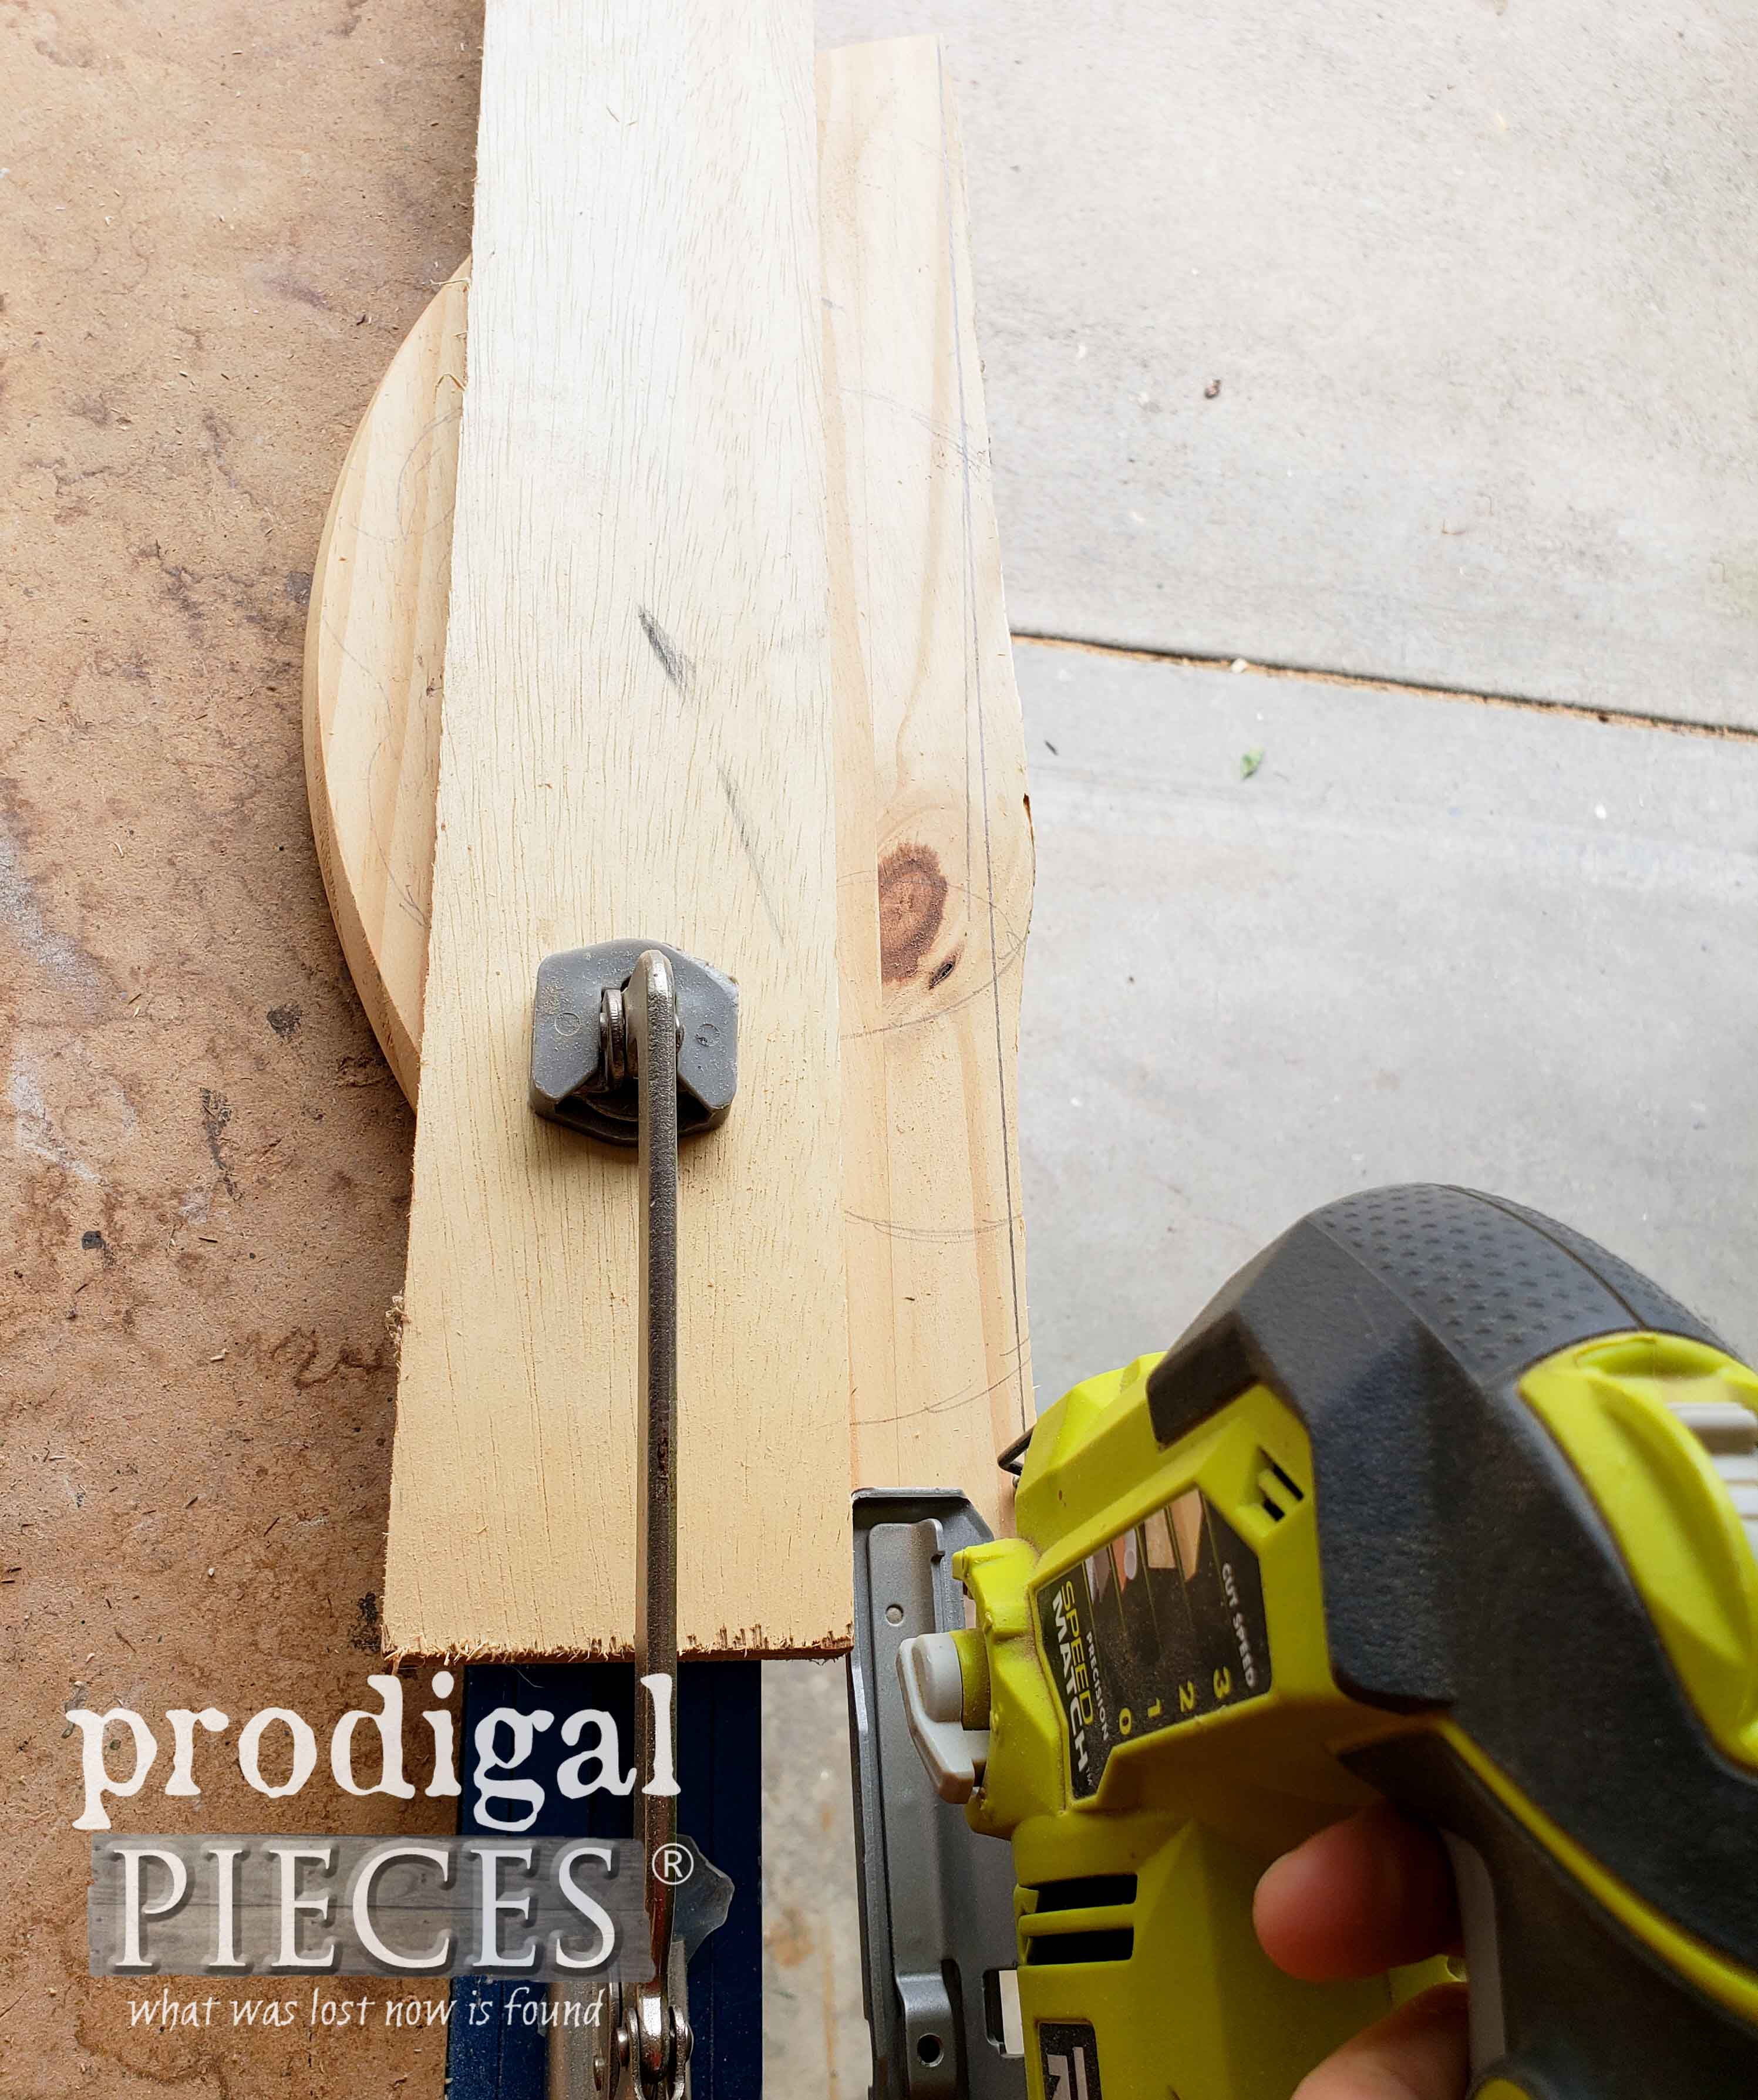 Using Jigsaw to Cut Wooden Round | prodigalpieces.com